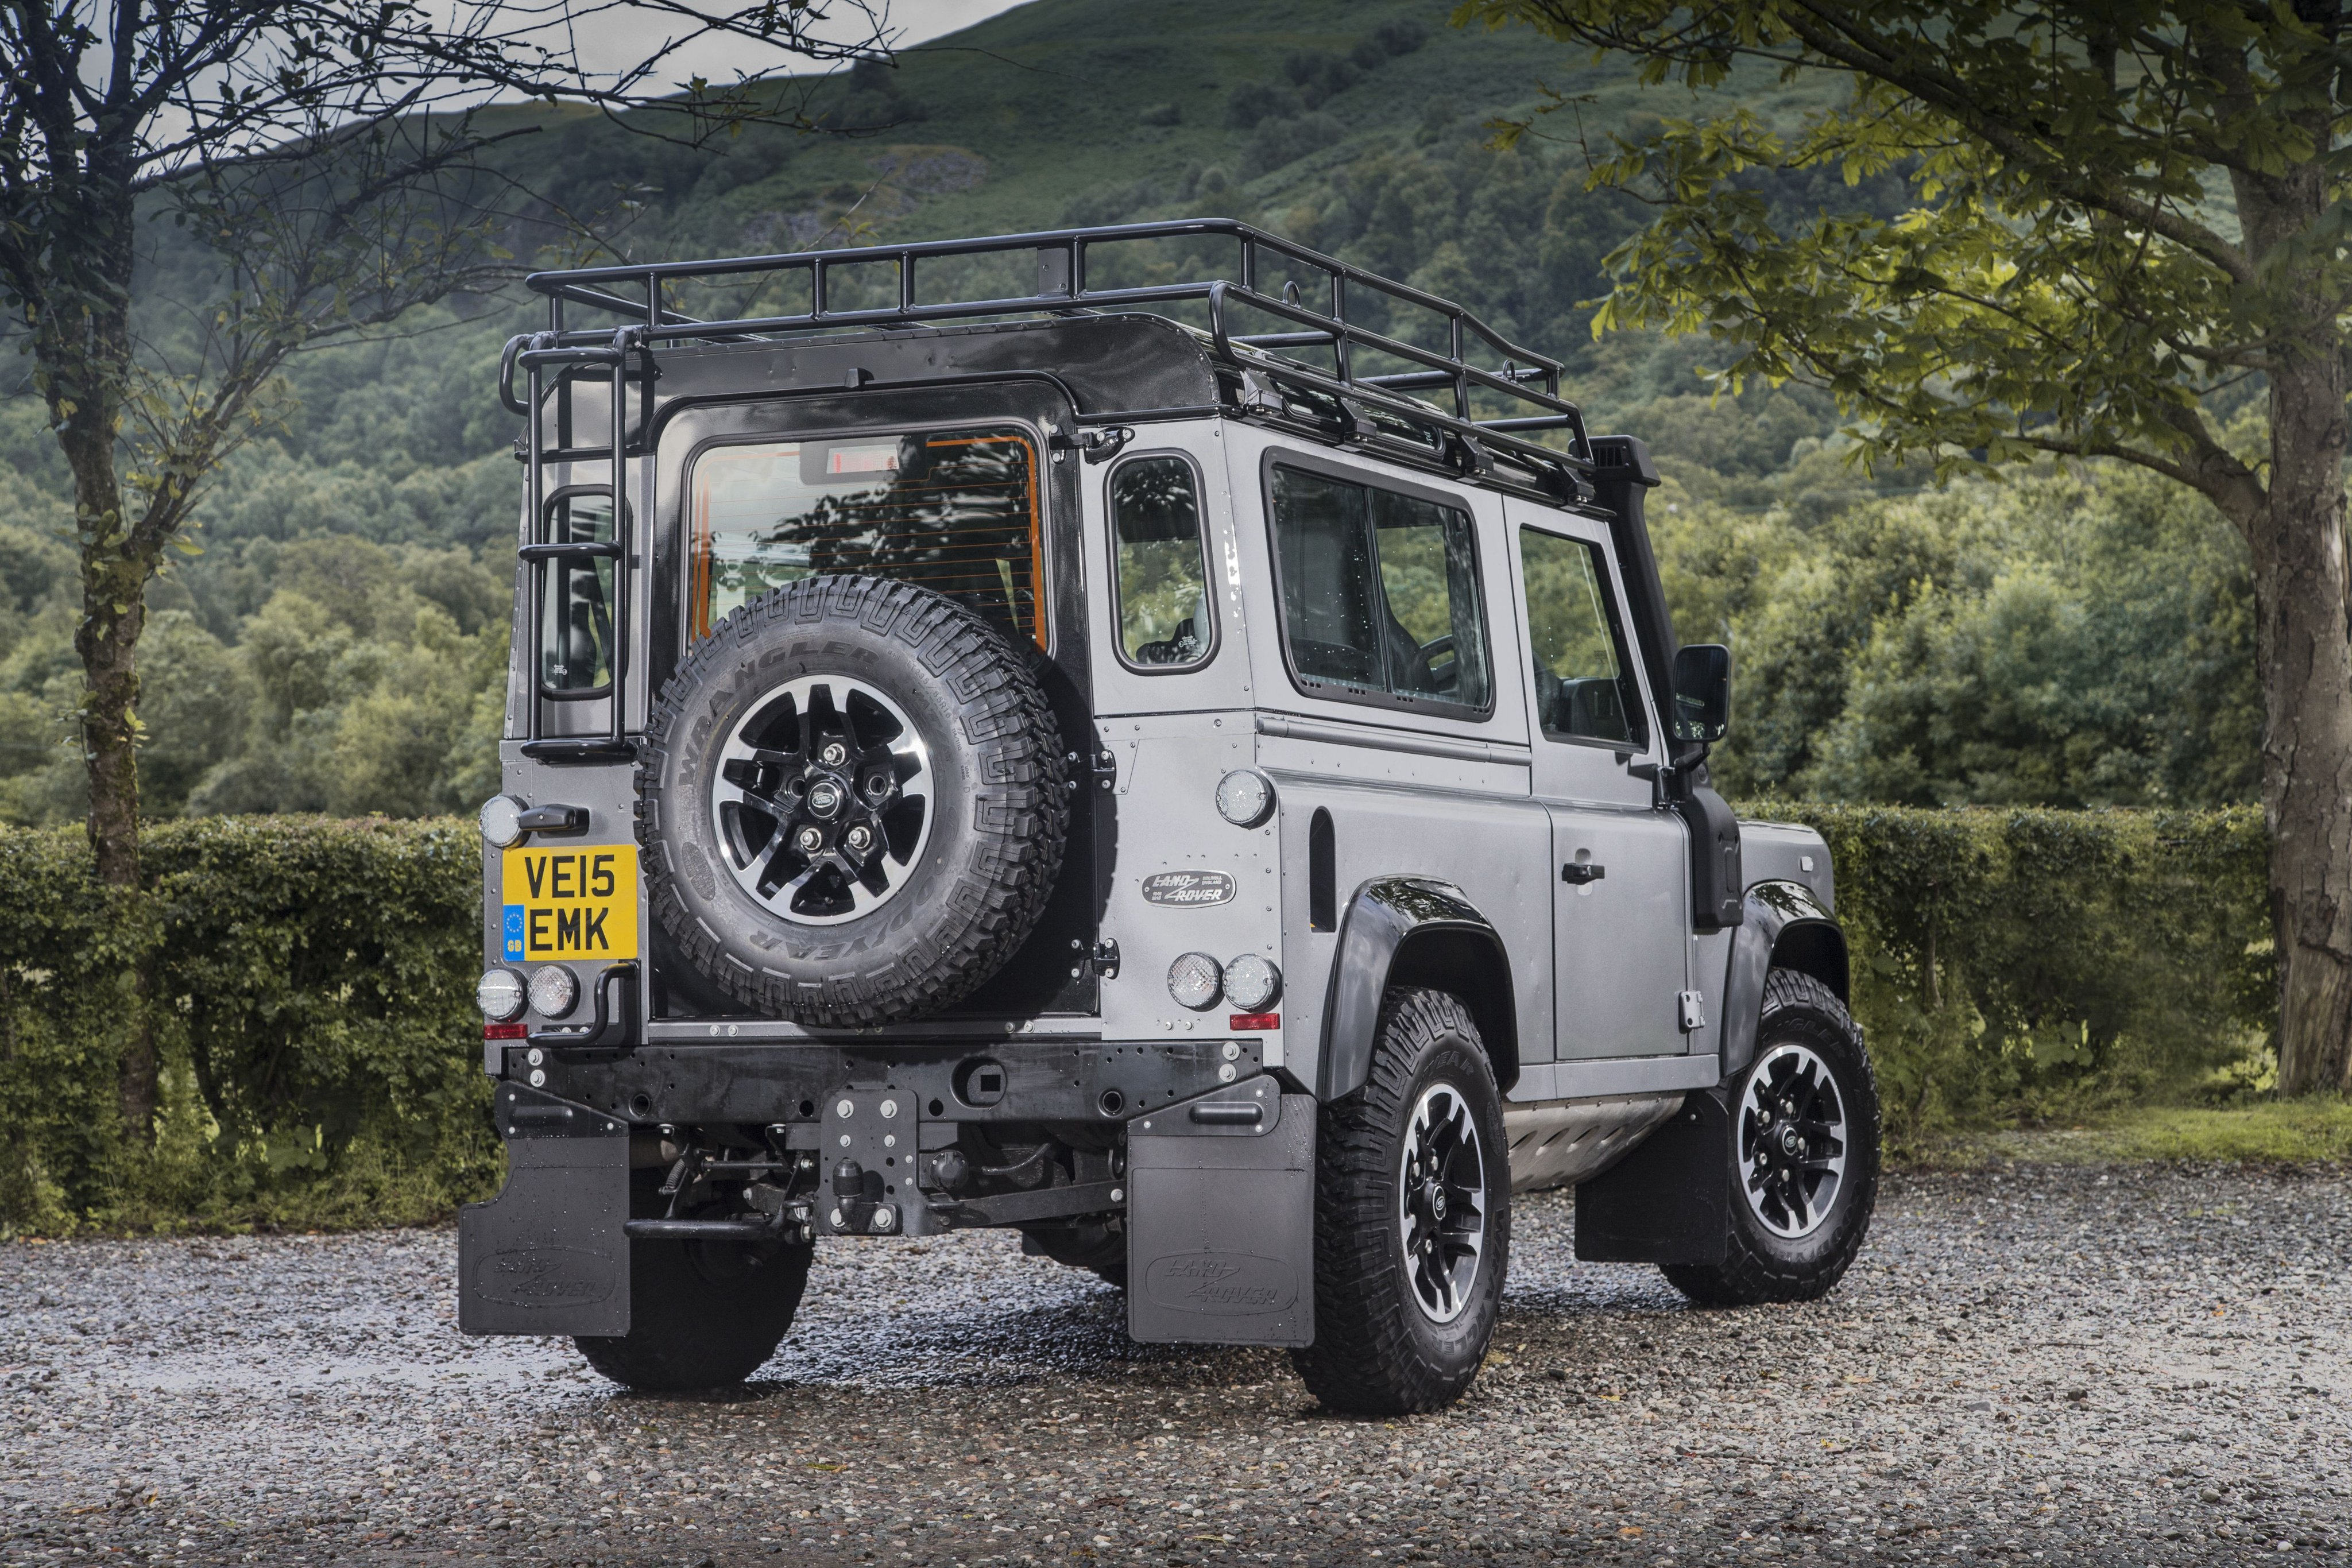 2015 Land Rover Defender 90 Adventure Uk Spec 4x4 Suv